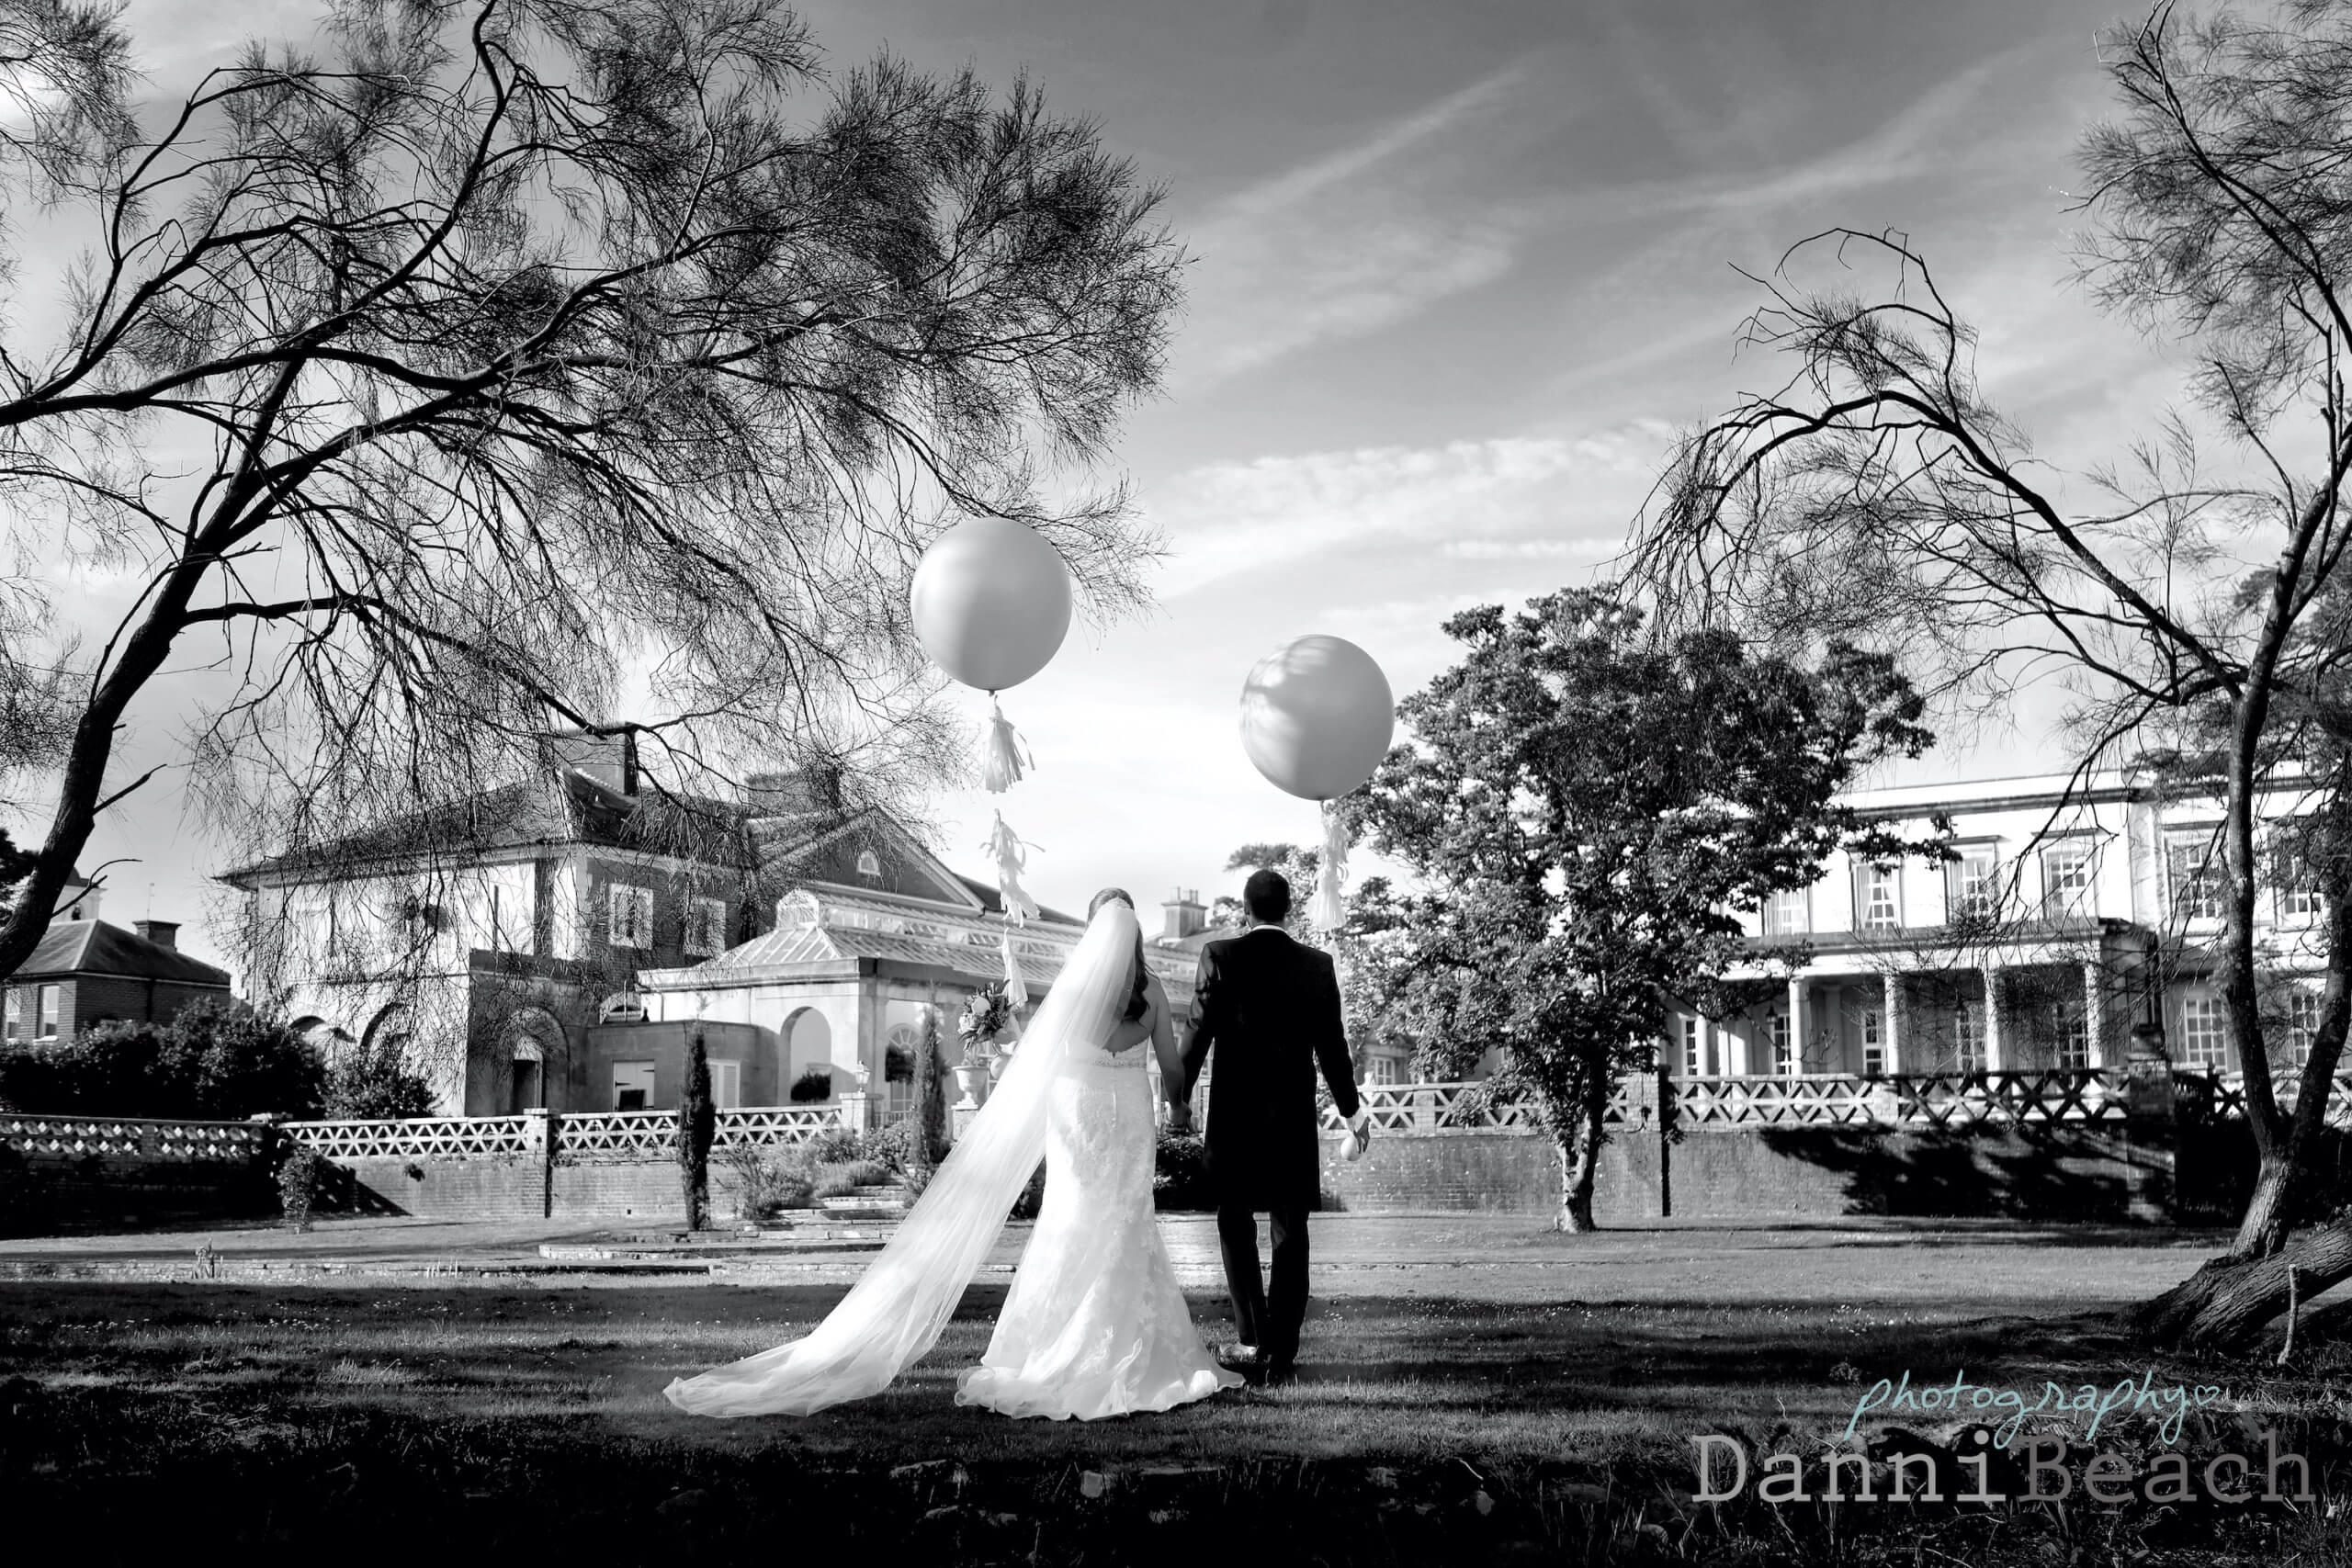 Balloons on your wedding day